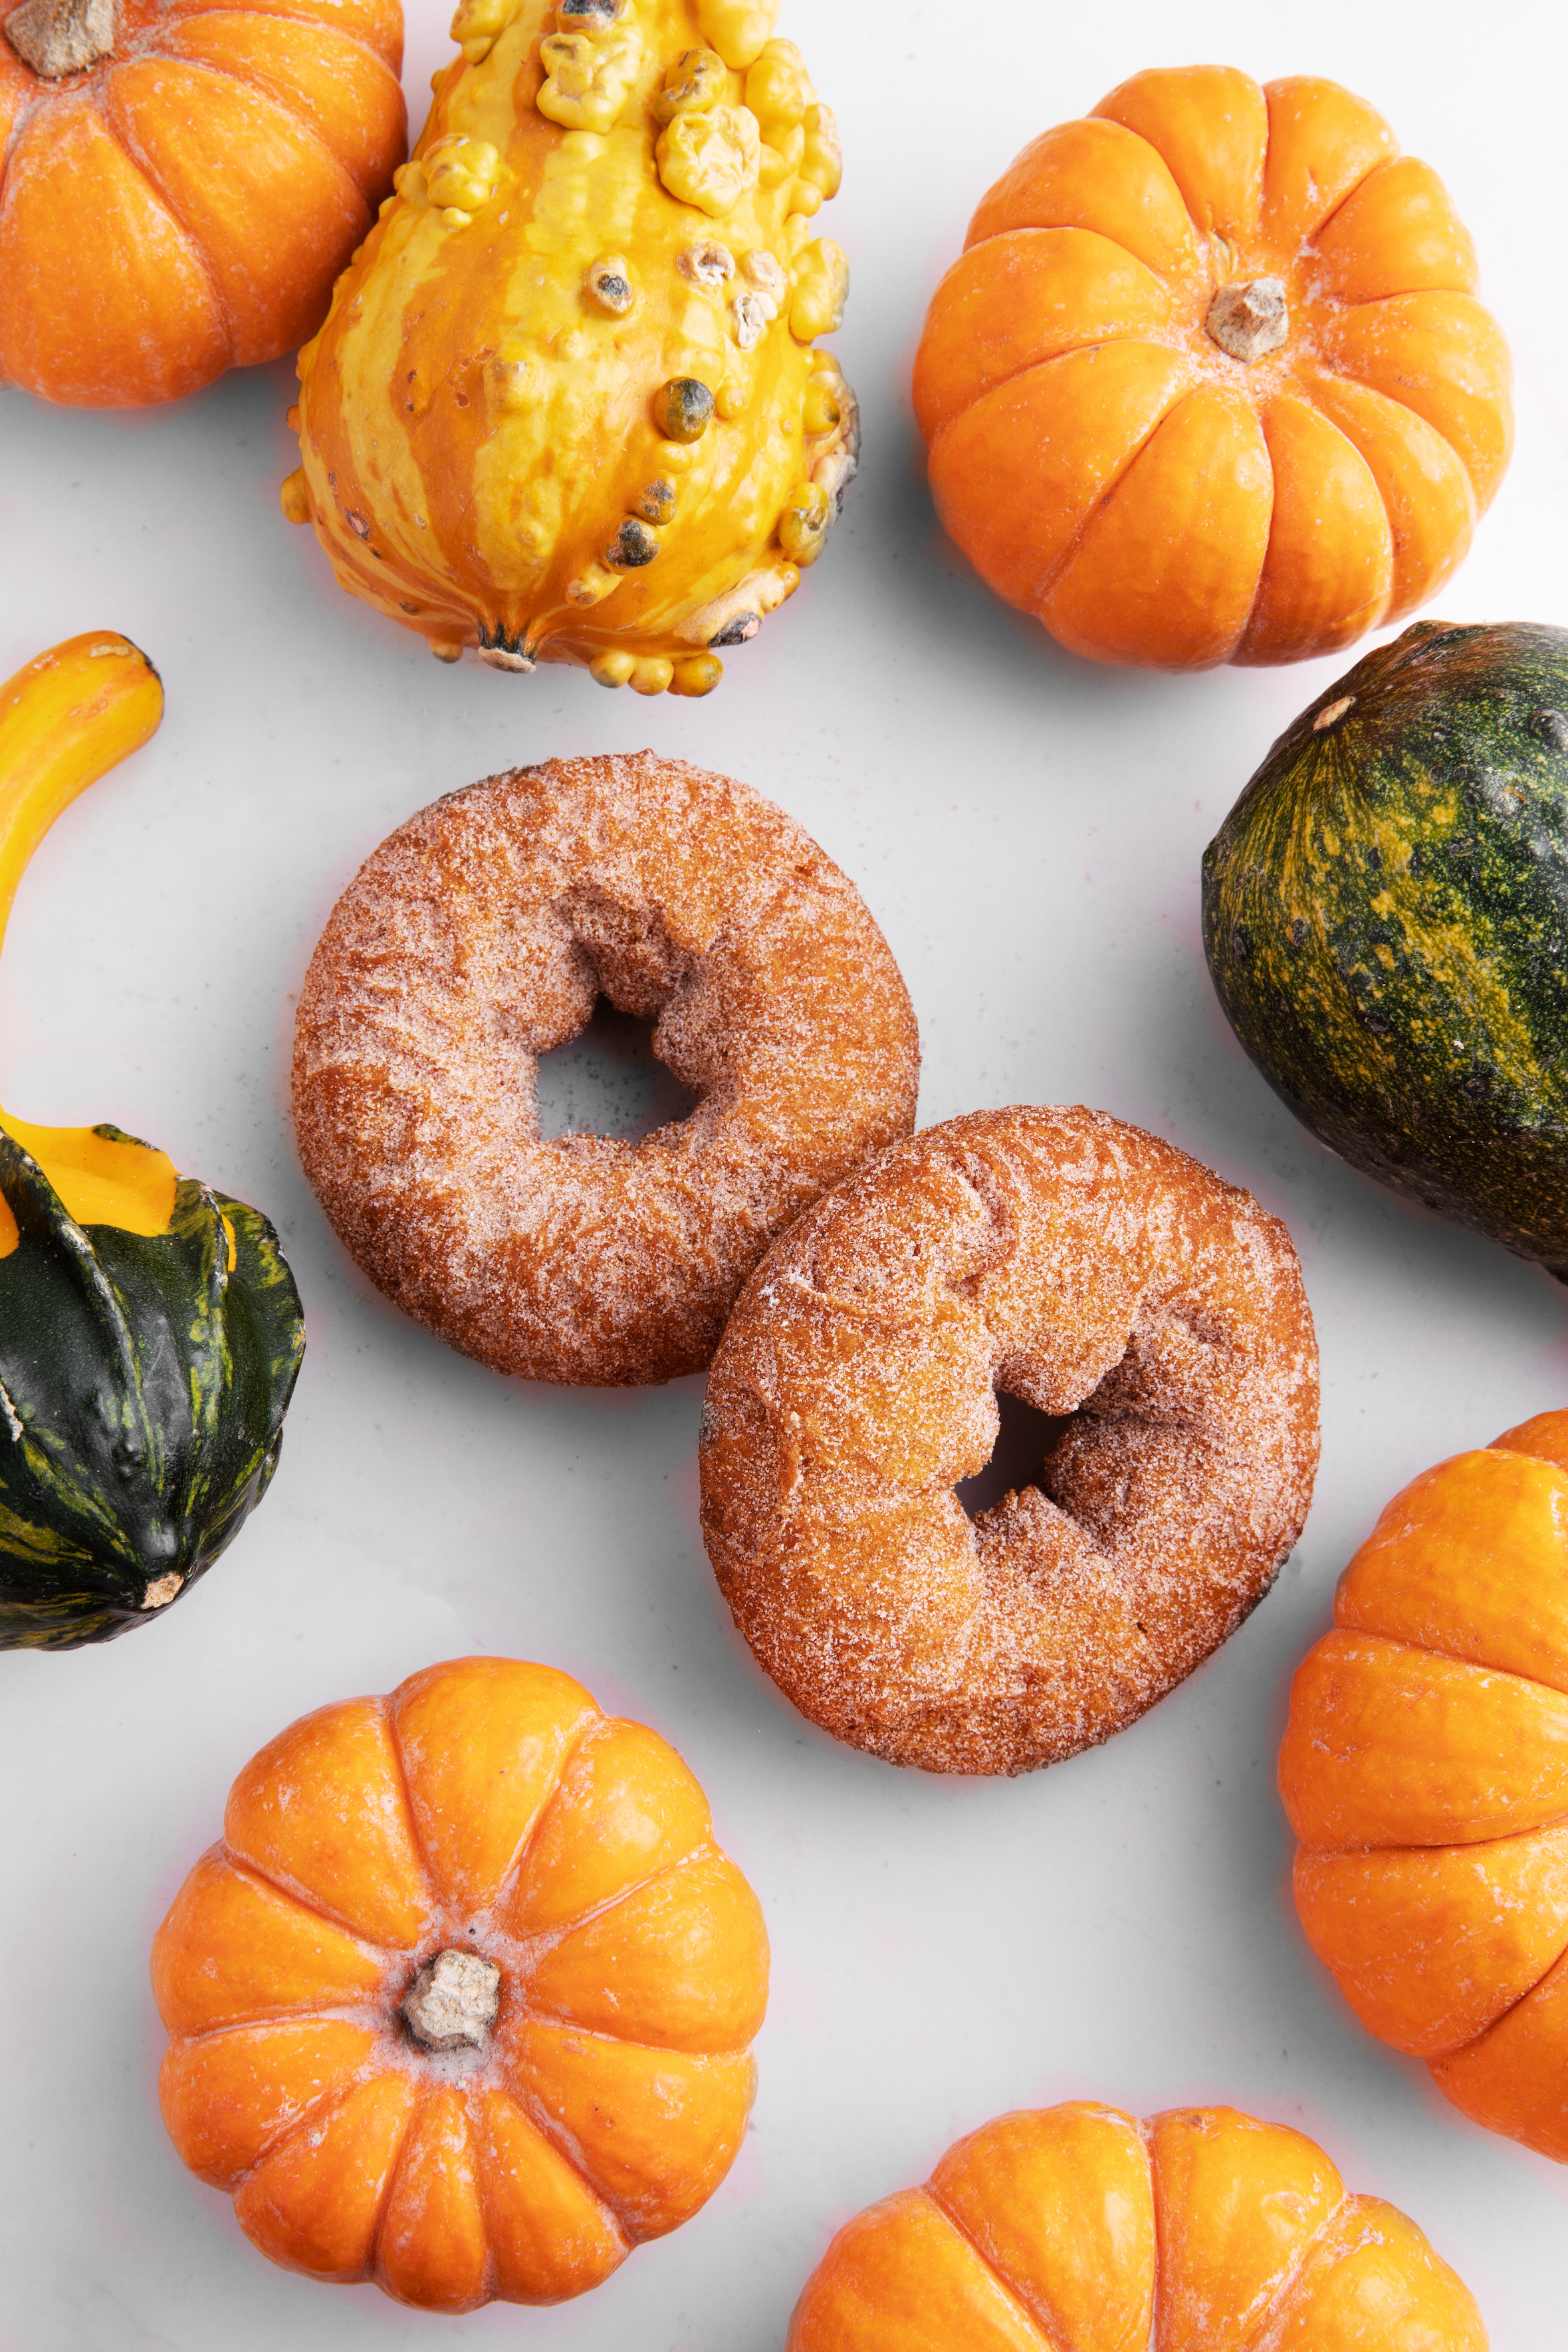 Pumpkin Spice Donuts available now